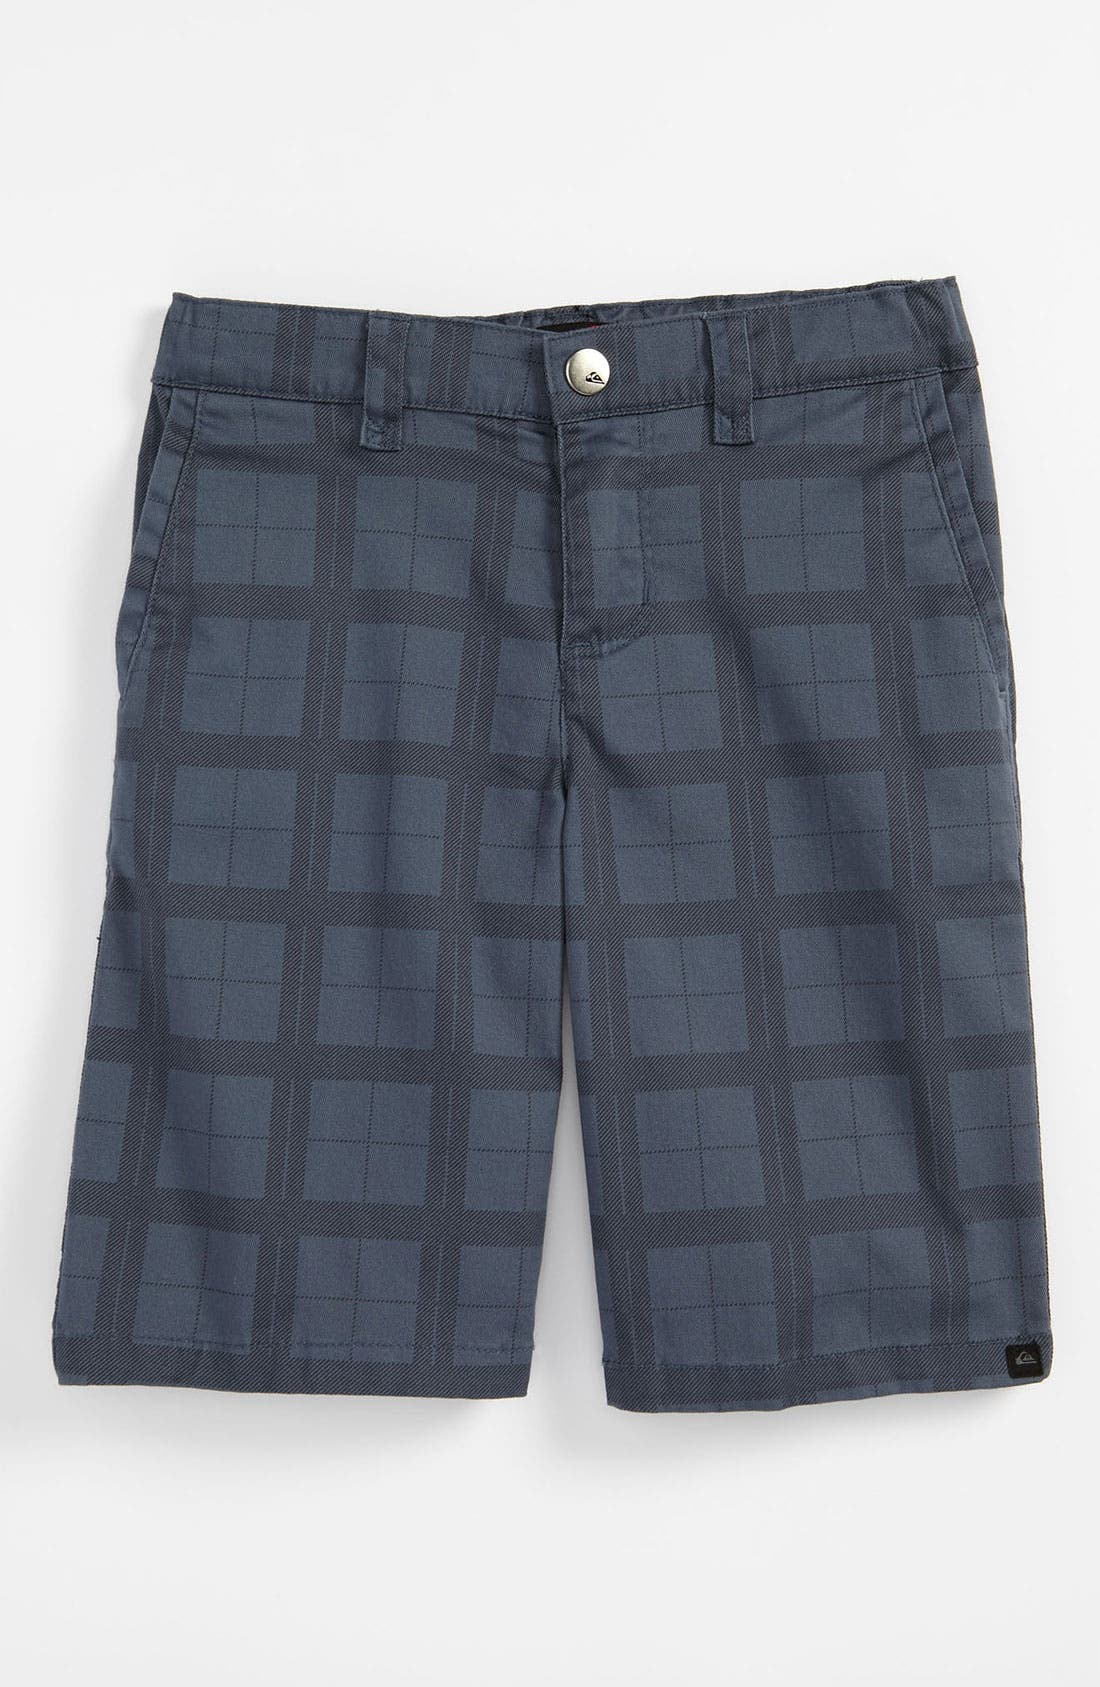 Alternate Image 1 Selected - Quiksilver 'Uno Surplus' Shorts (Little Boys)